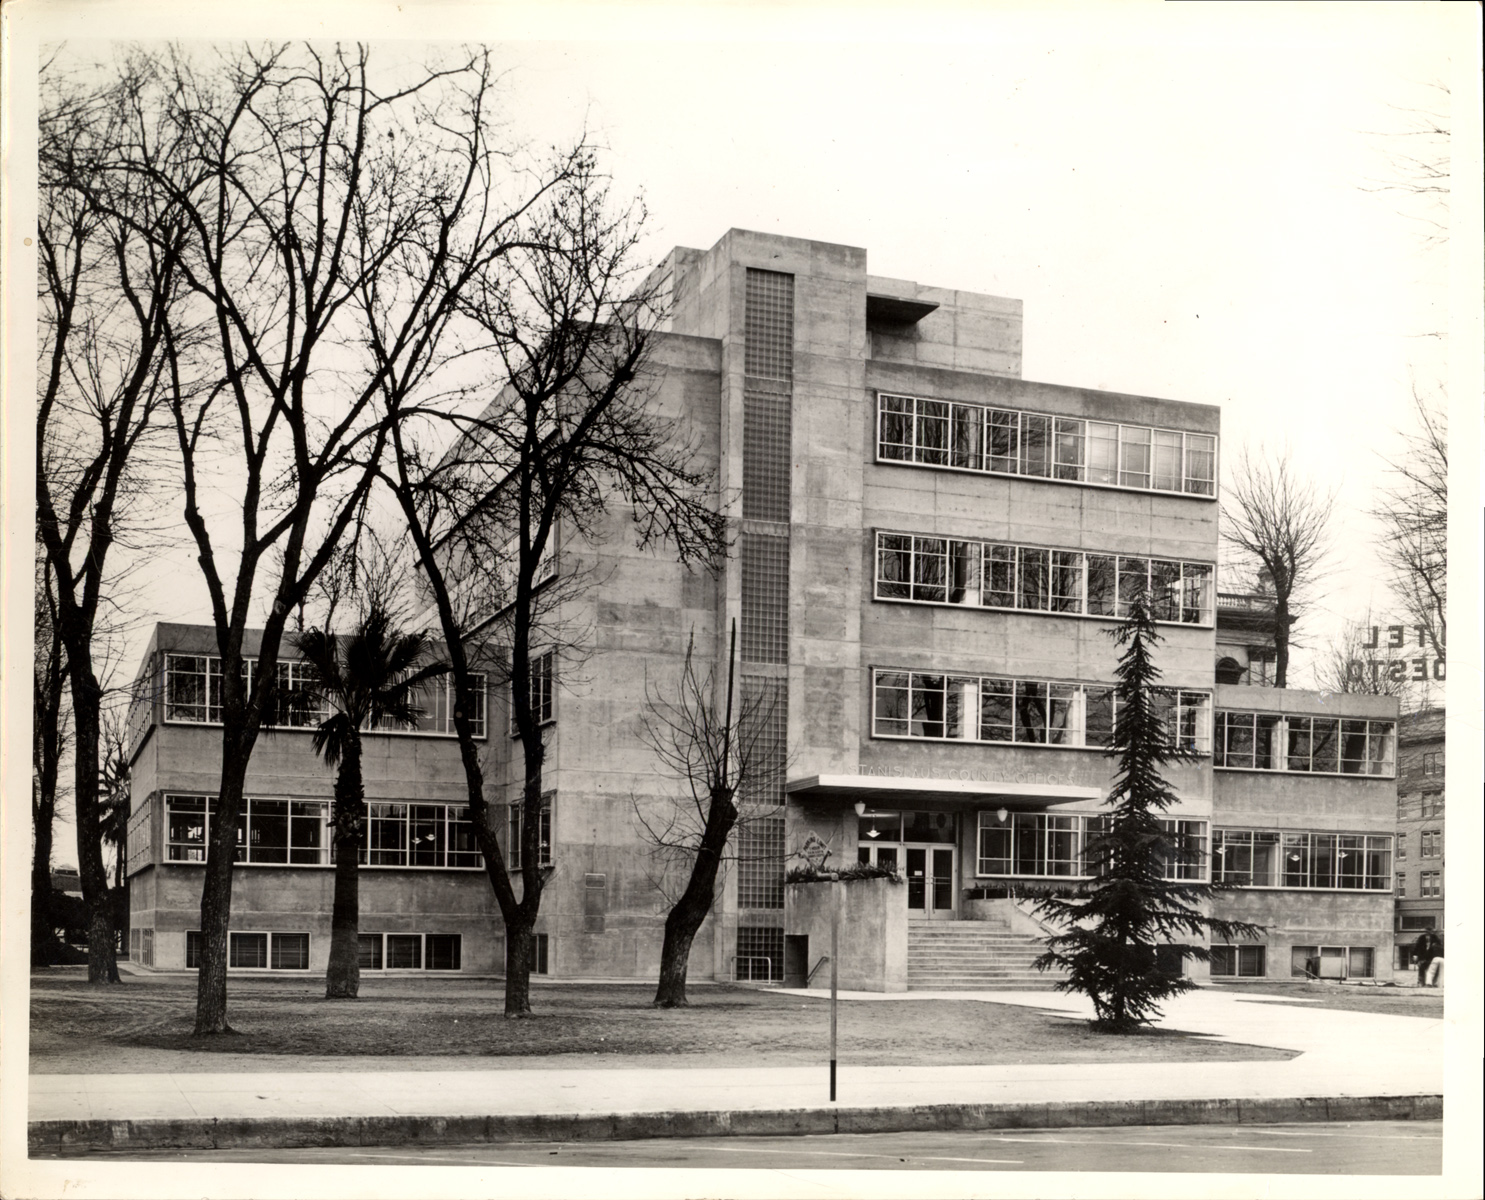 Modesto's Hall of Records (seen here in 1939) is a precious example of the modernist Bauhaus architectural style pioneered in Germany in the early 1900s.